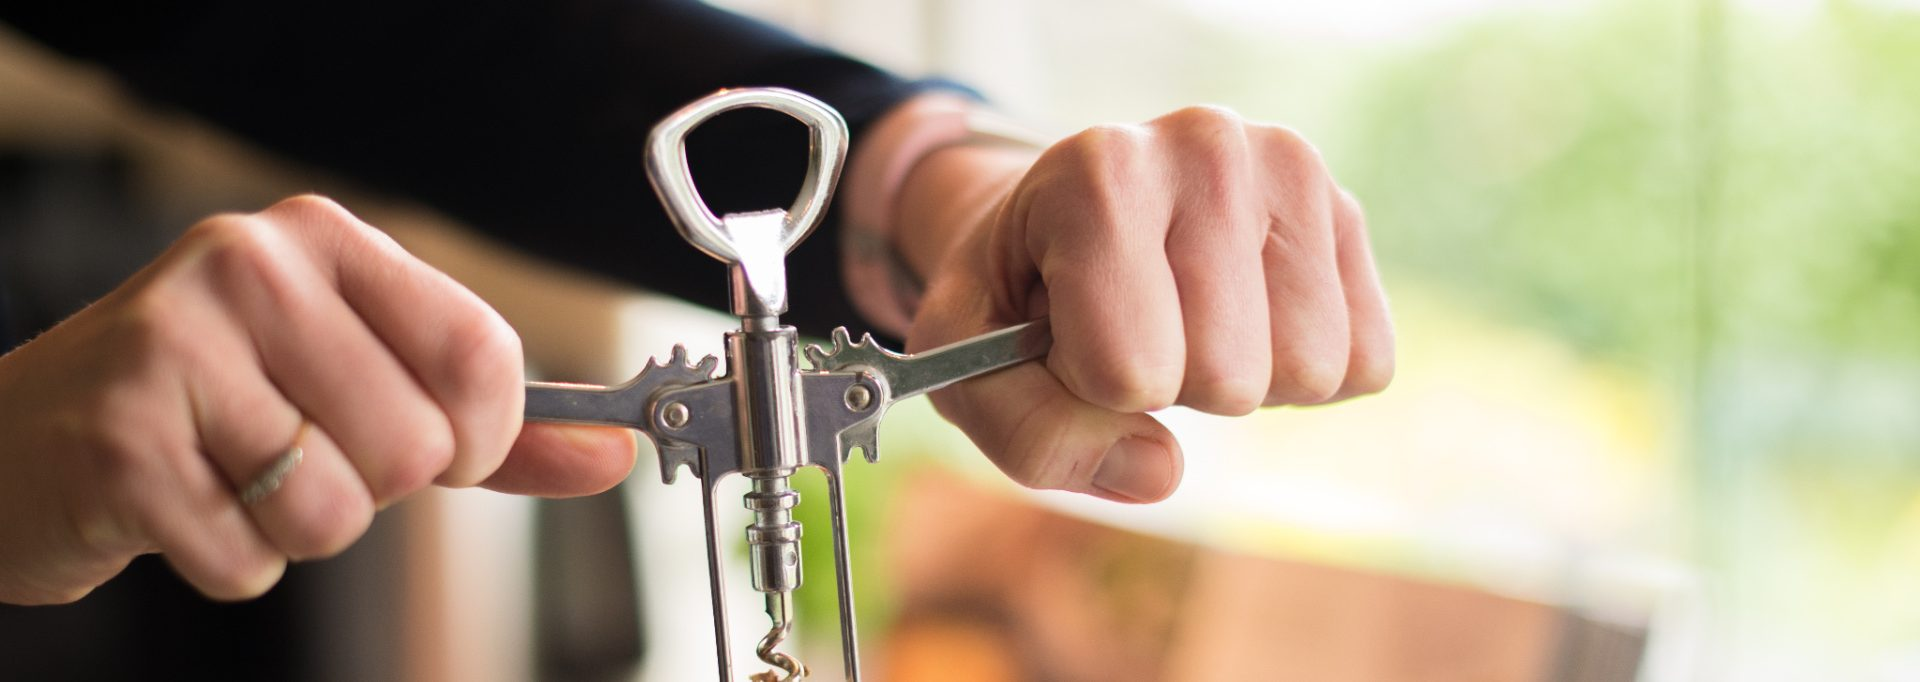 How To Open A Bottle Of Wine With A Corkscrew